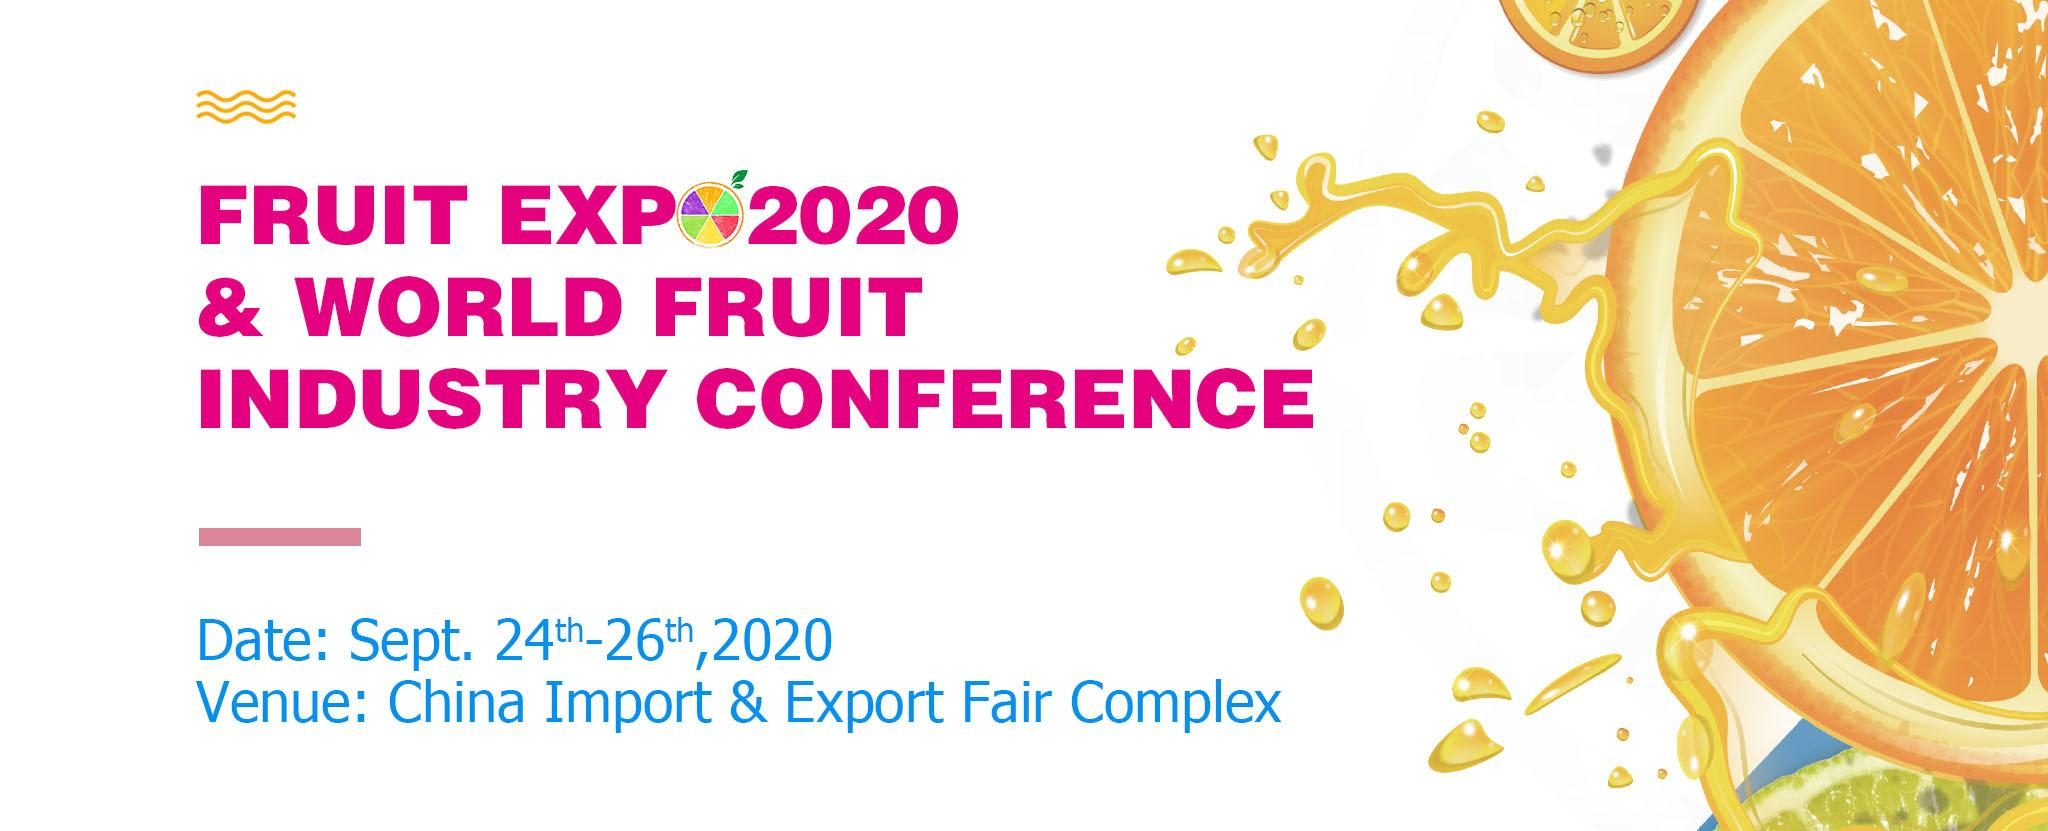 Guangzhou International Fruit Expo 2020 (24.09.2020-26.09.2020)